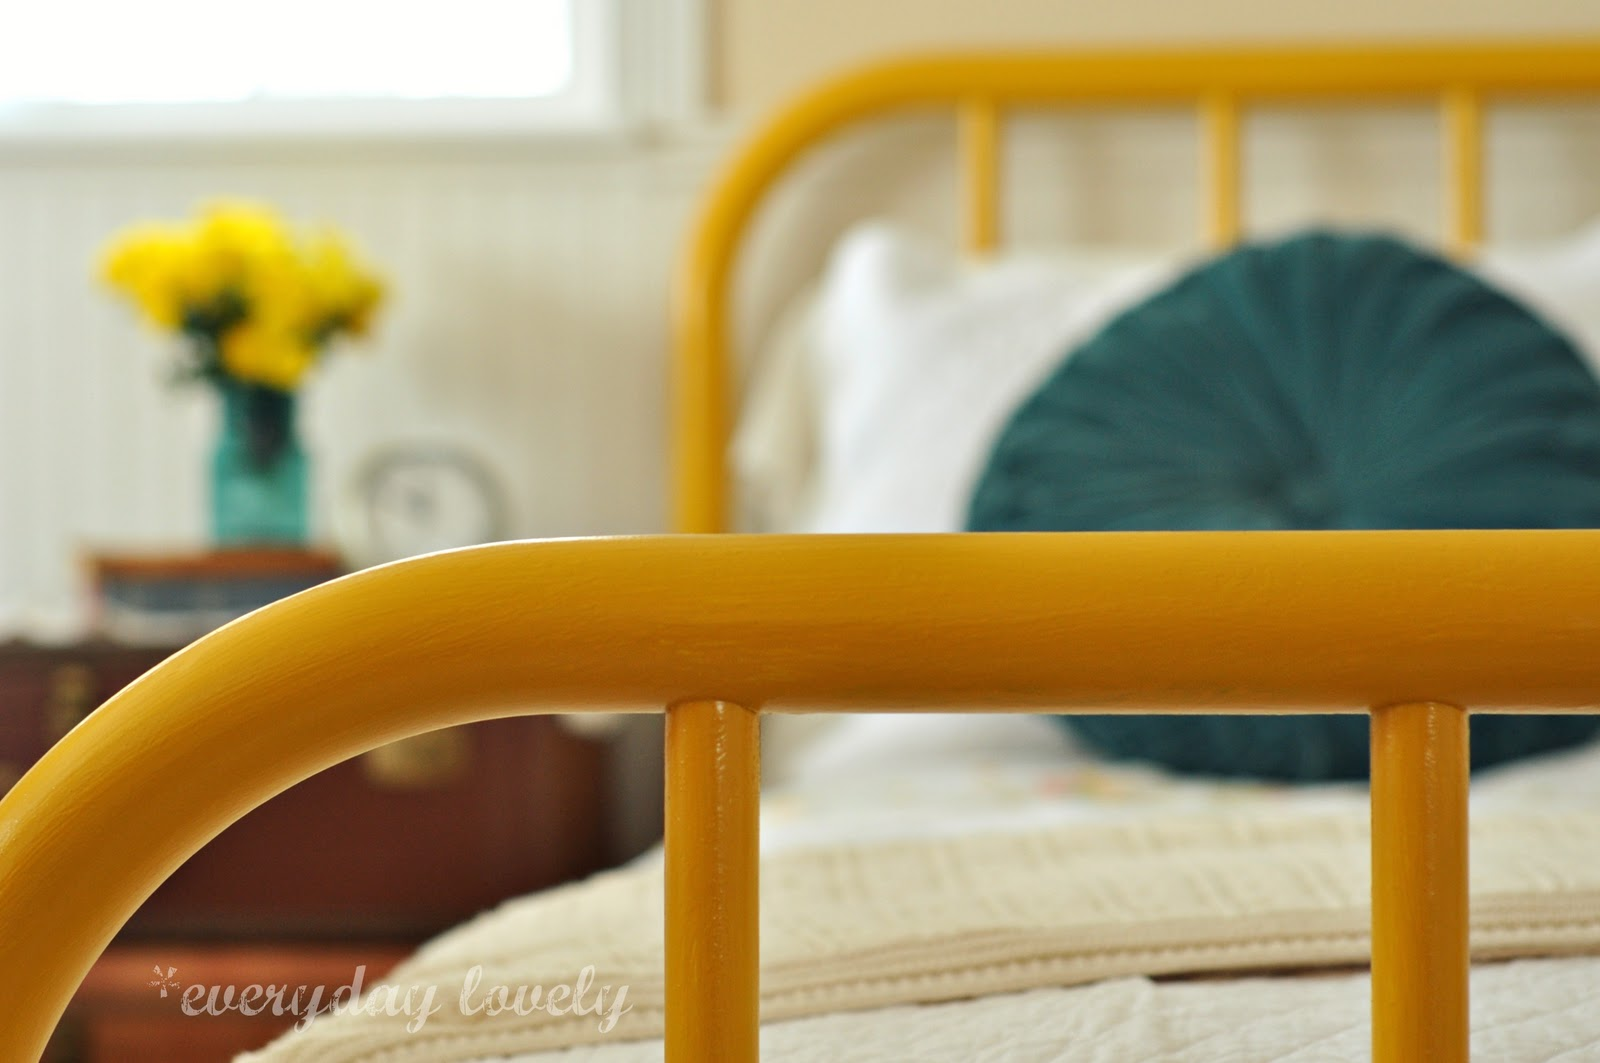 Gold Bed Frame Created With Spray Paint: Everyday Lovely: My Yellow Iron Bed